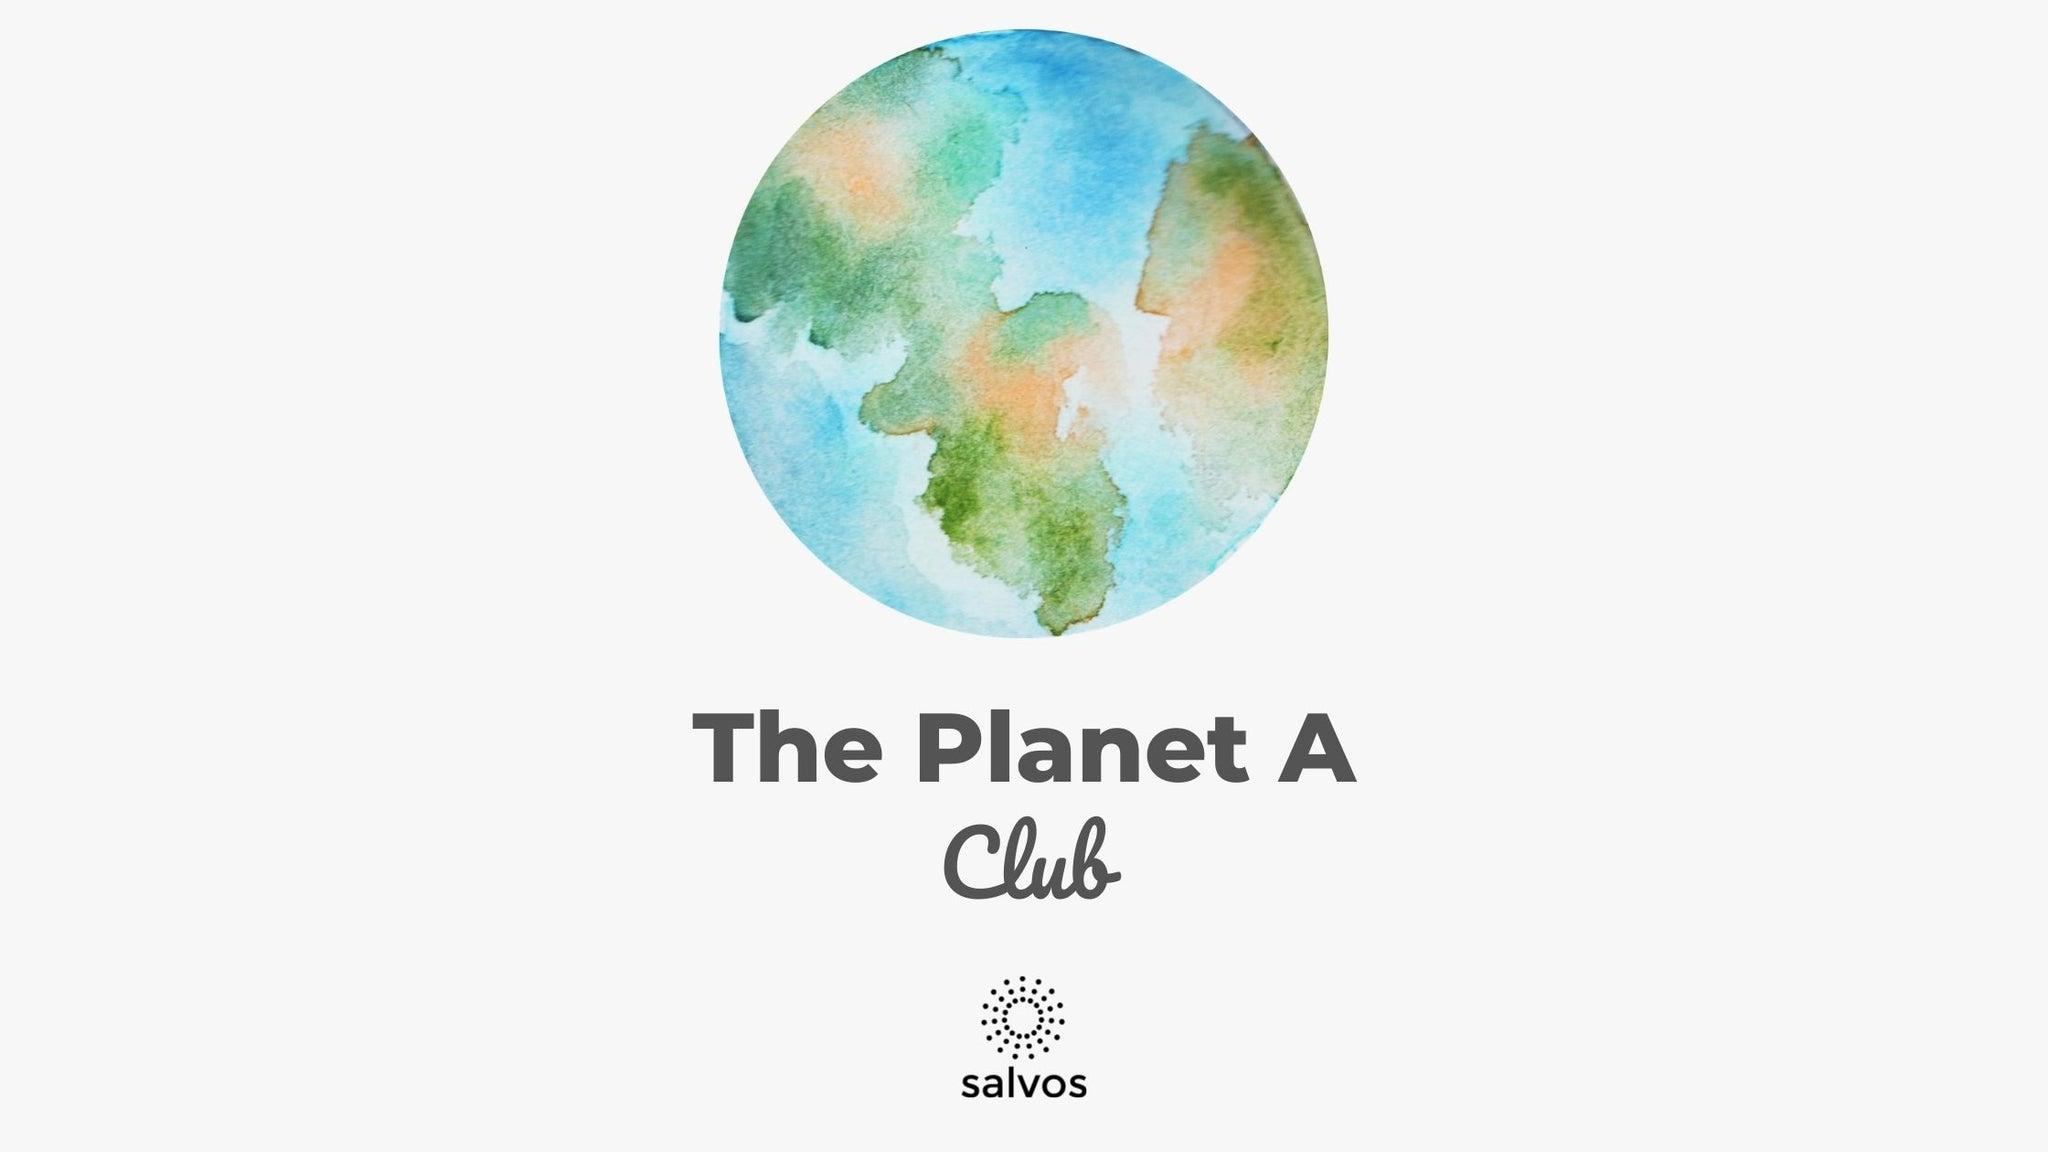 The Planet A Club